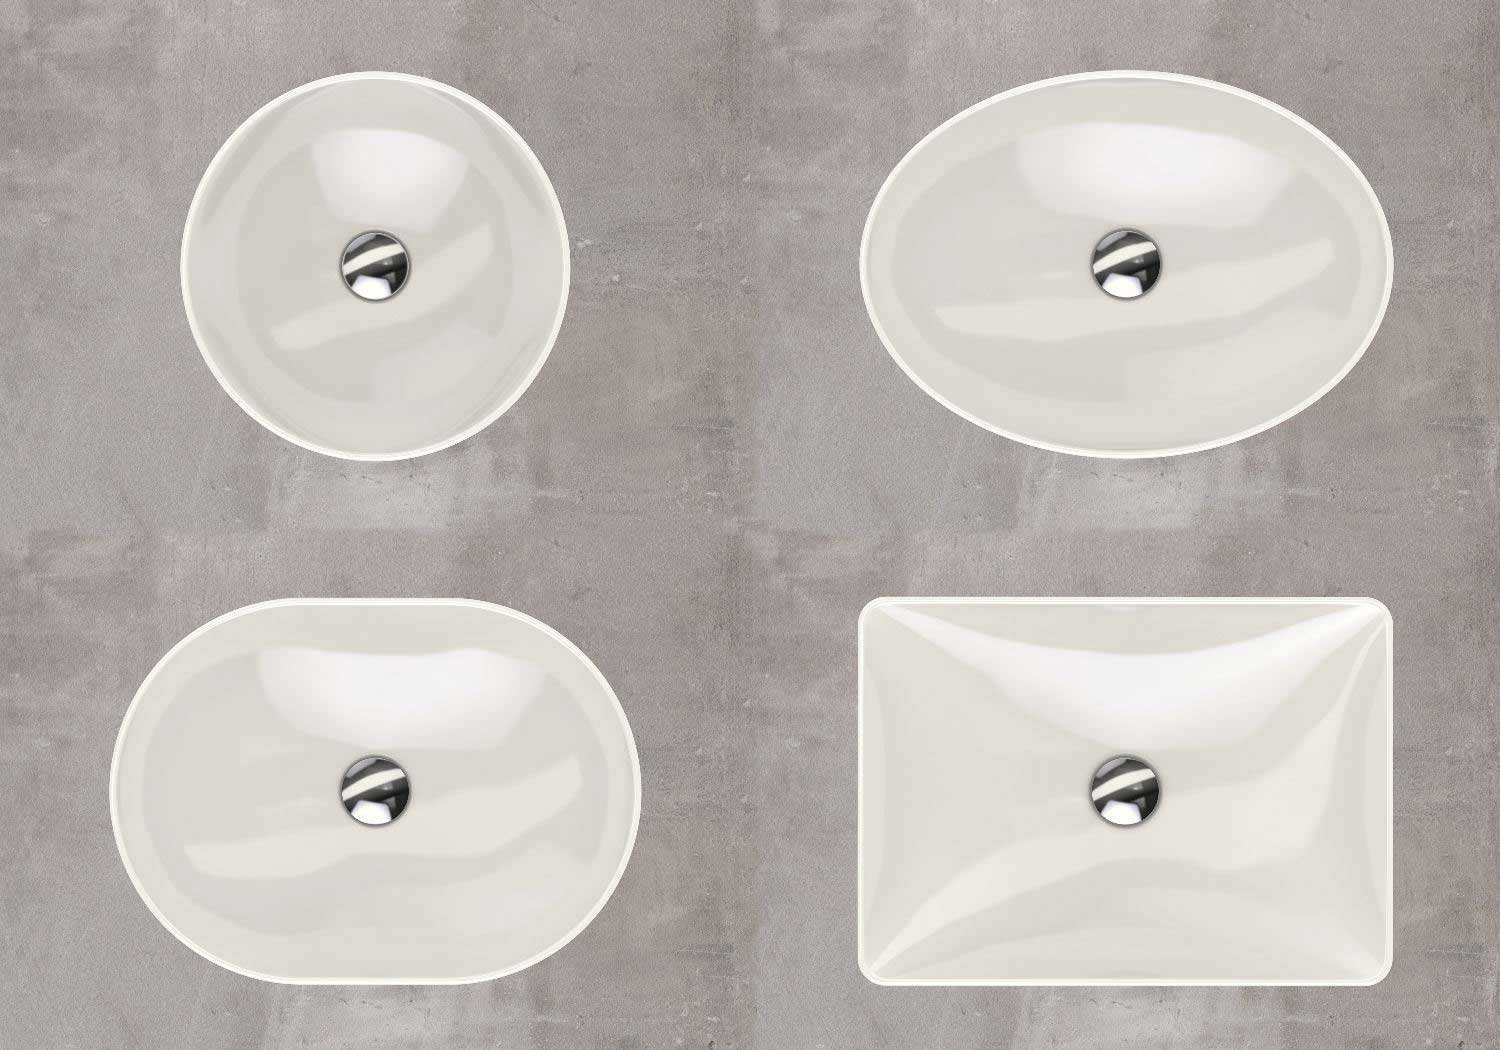 Geberit Variform basins are ideal for use in shopping mall bathrooms